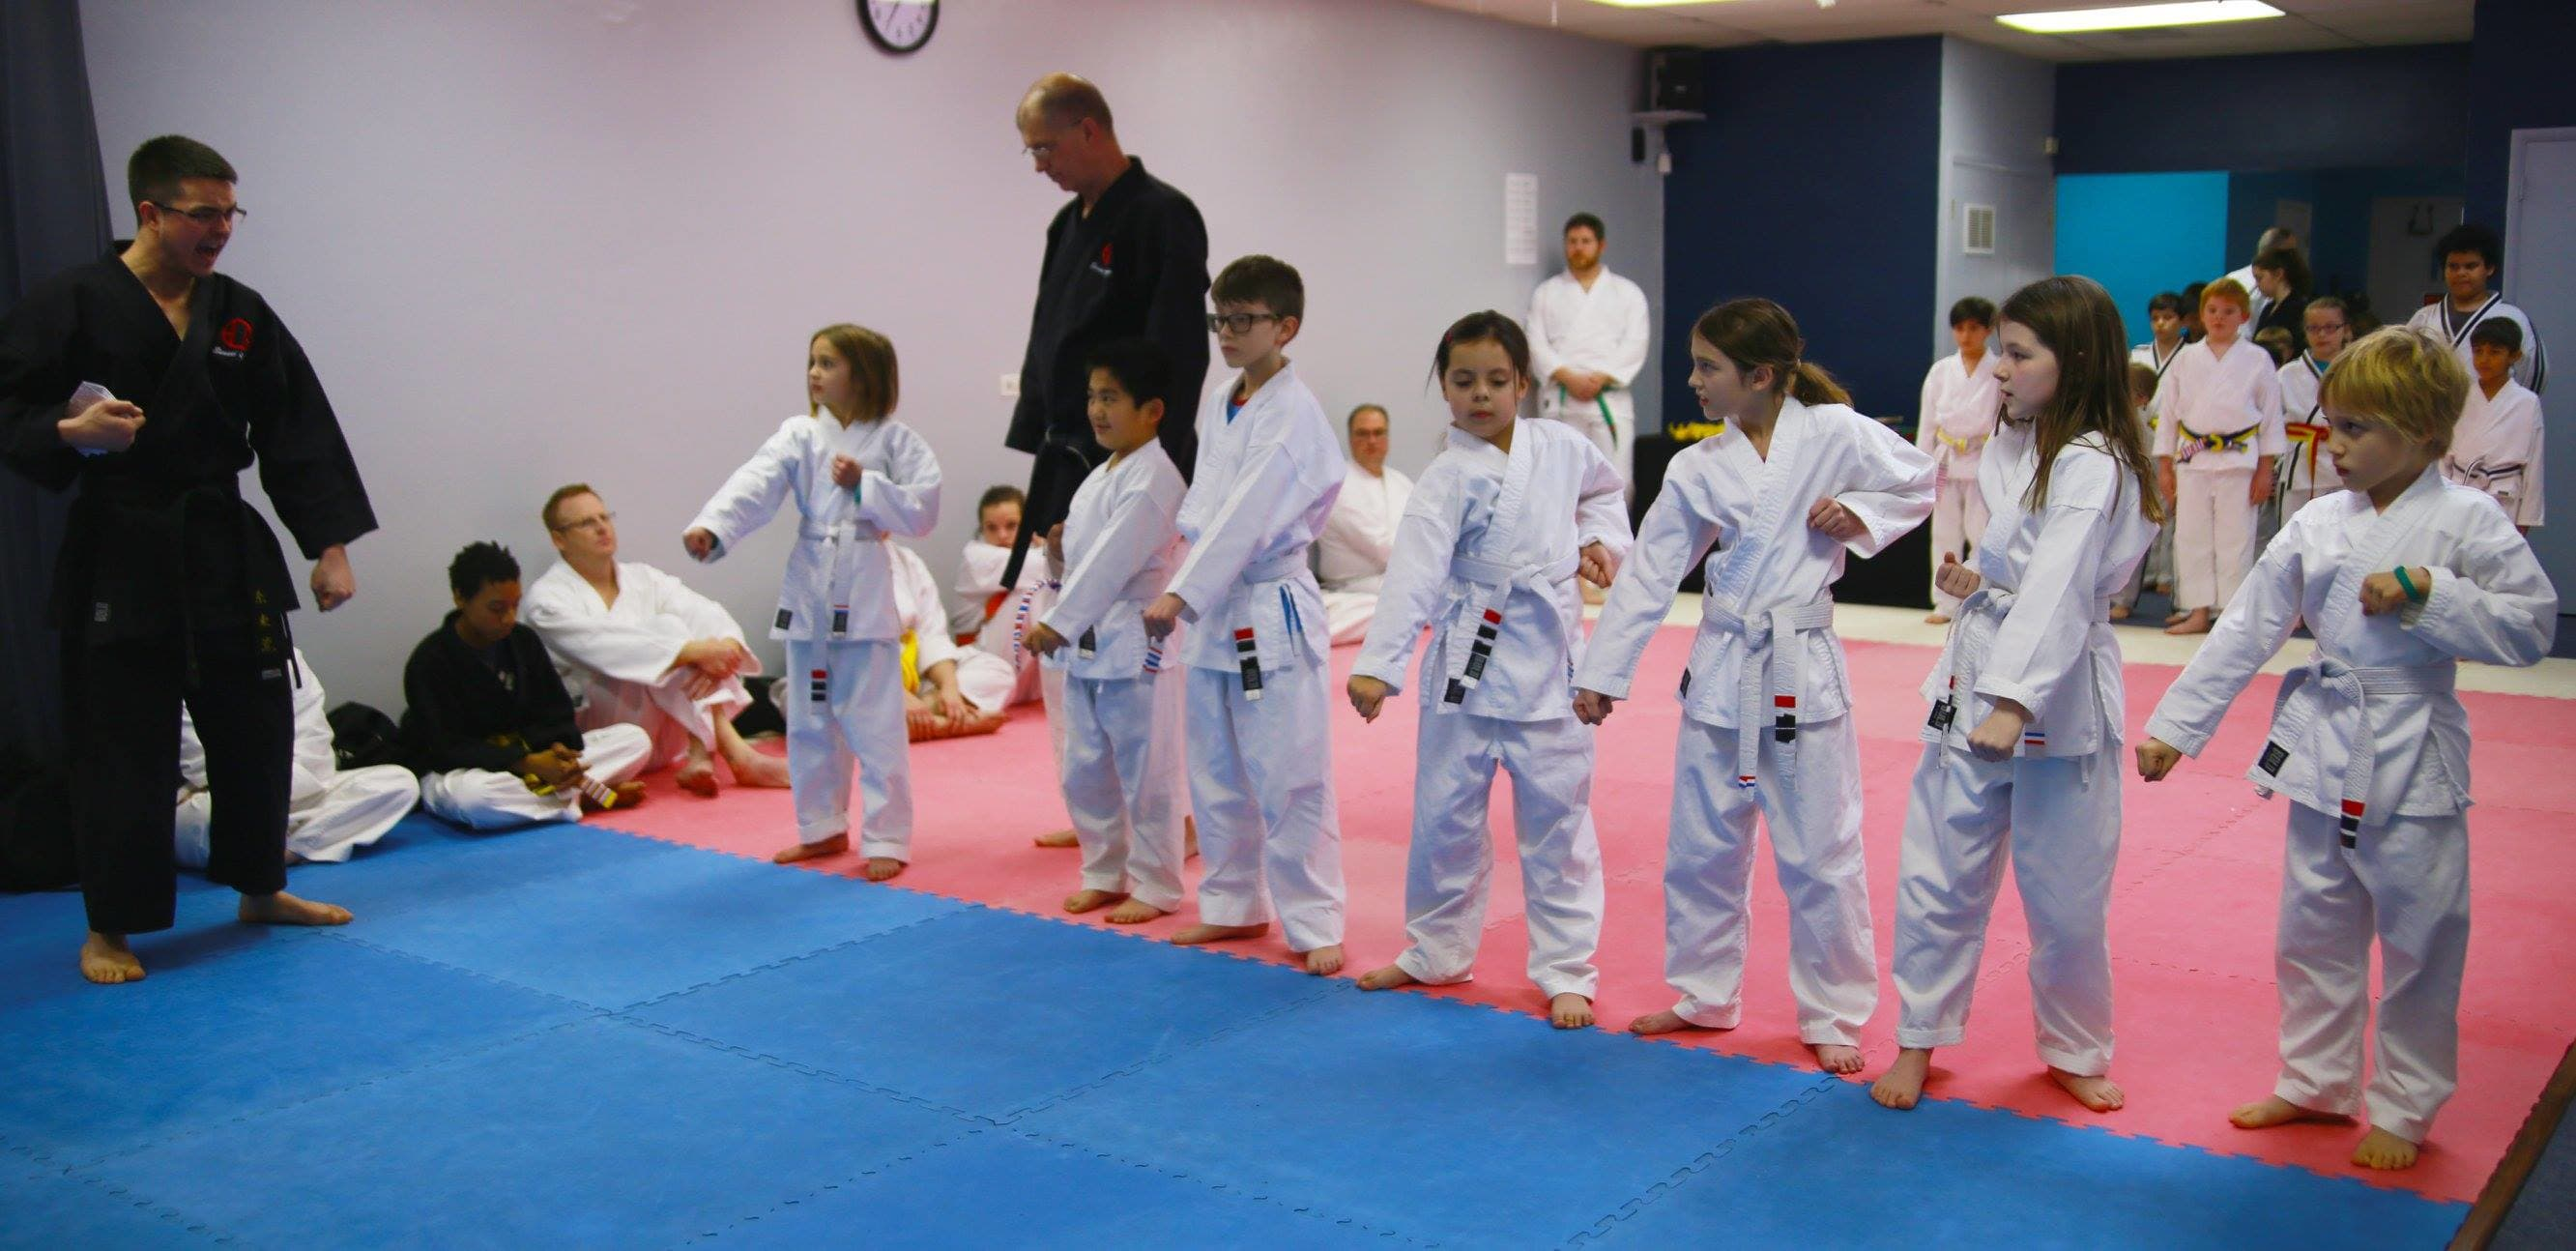 "<h2><span style=""color:#ffffff;"">Karate Training At Any Age in St. Louis</span></h2>"